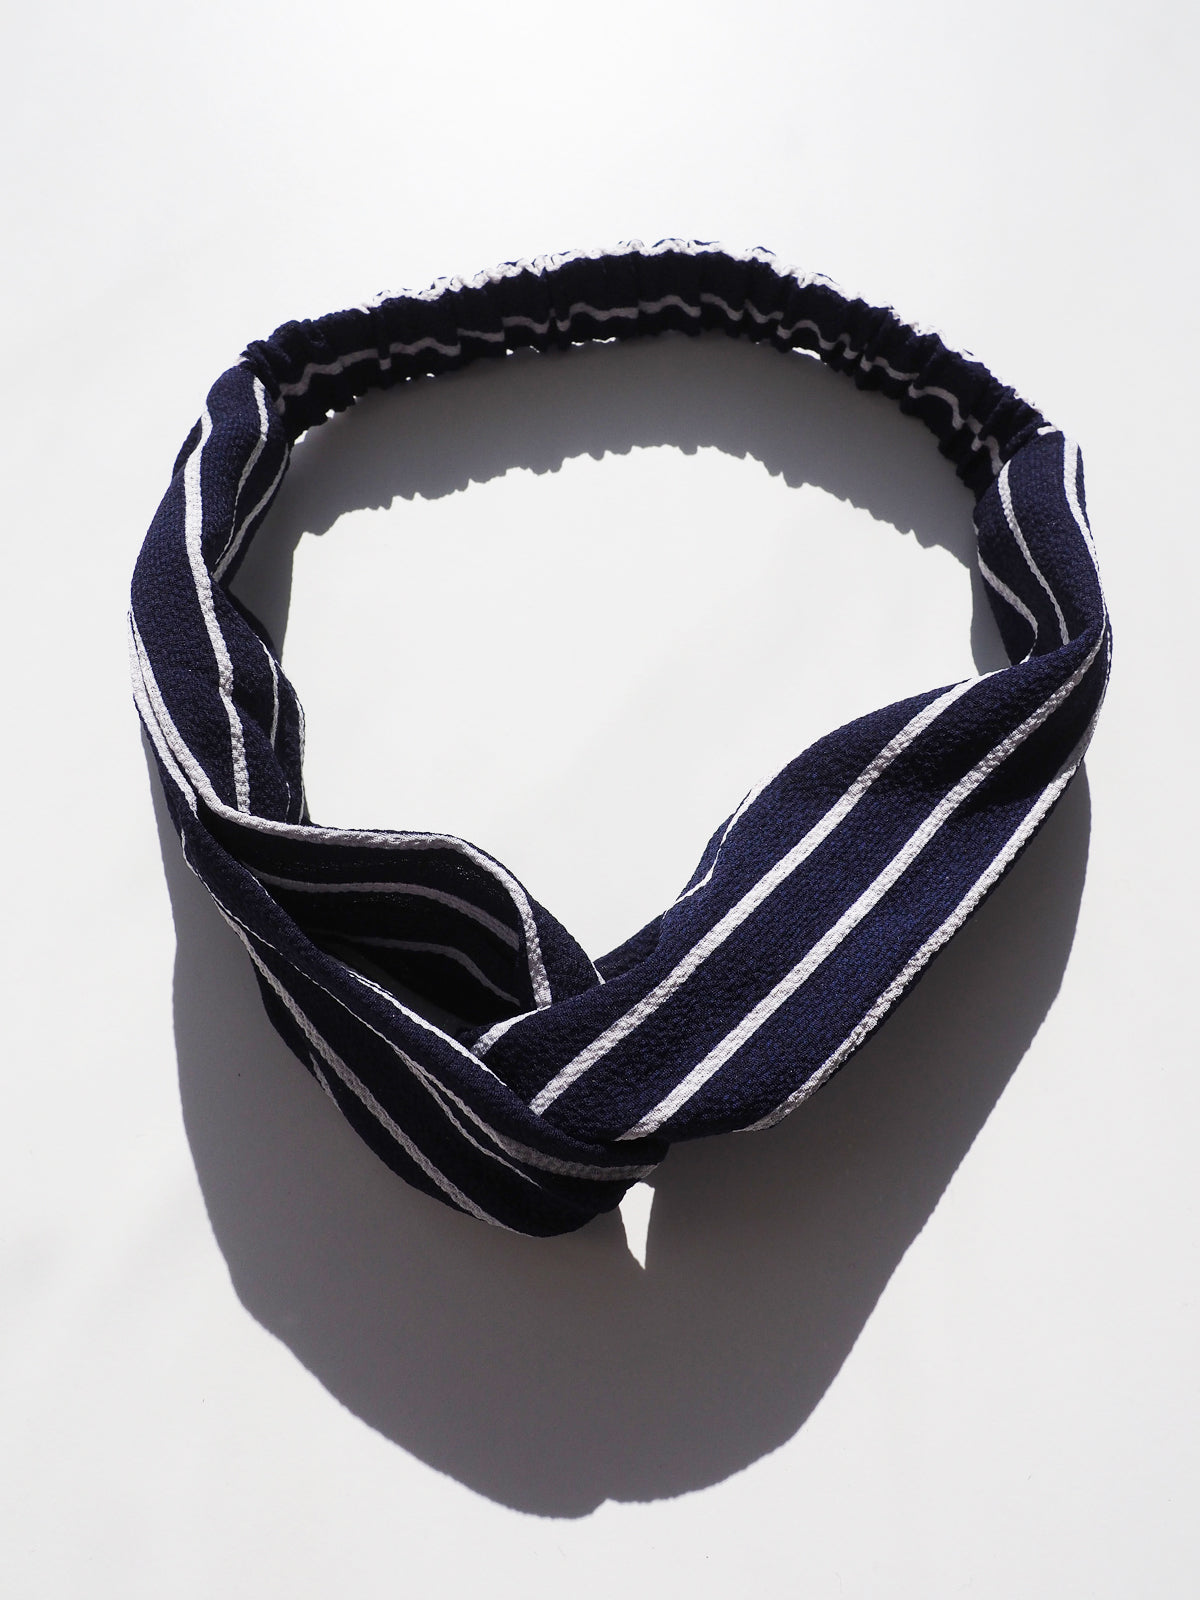 EVERYDAY GLAMOUR HEADBAND - NAVY & WHITE STRIPE